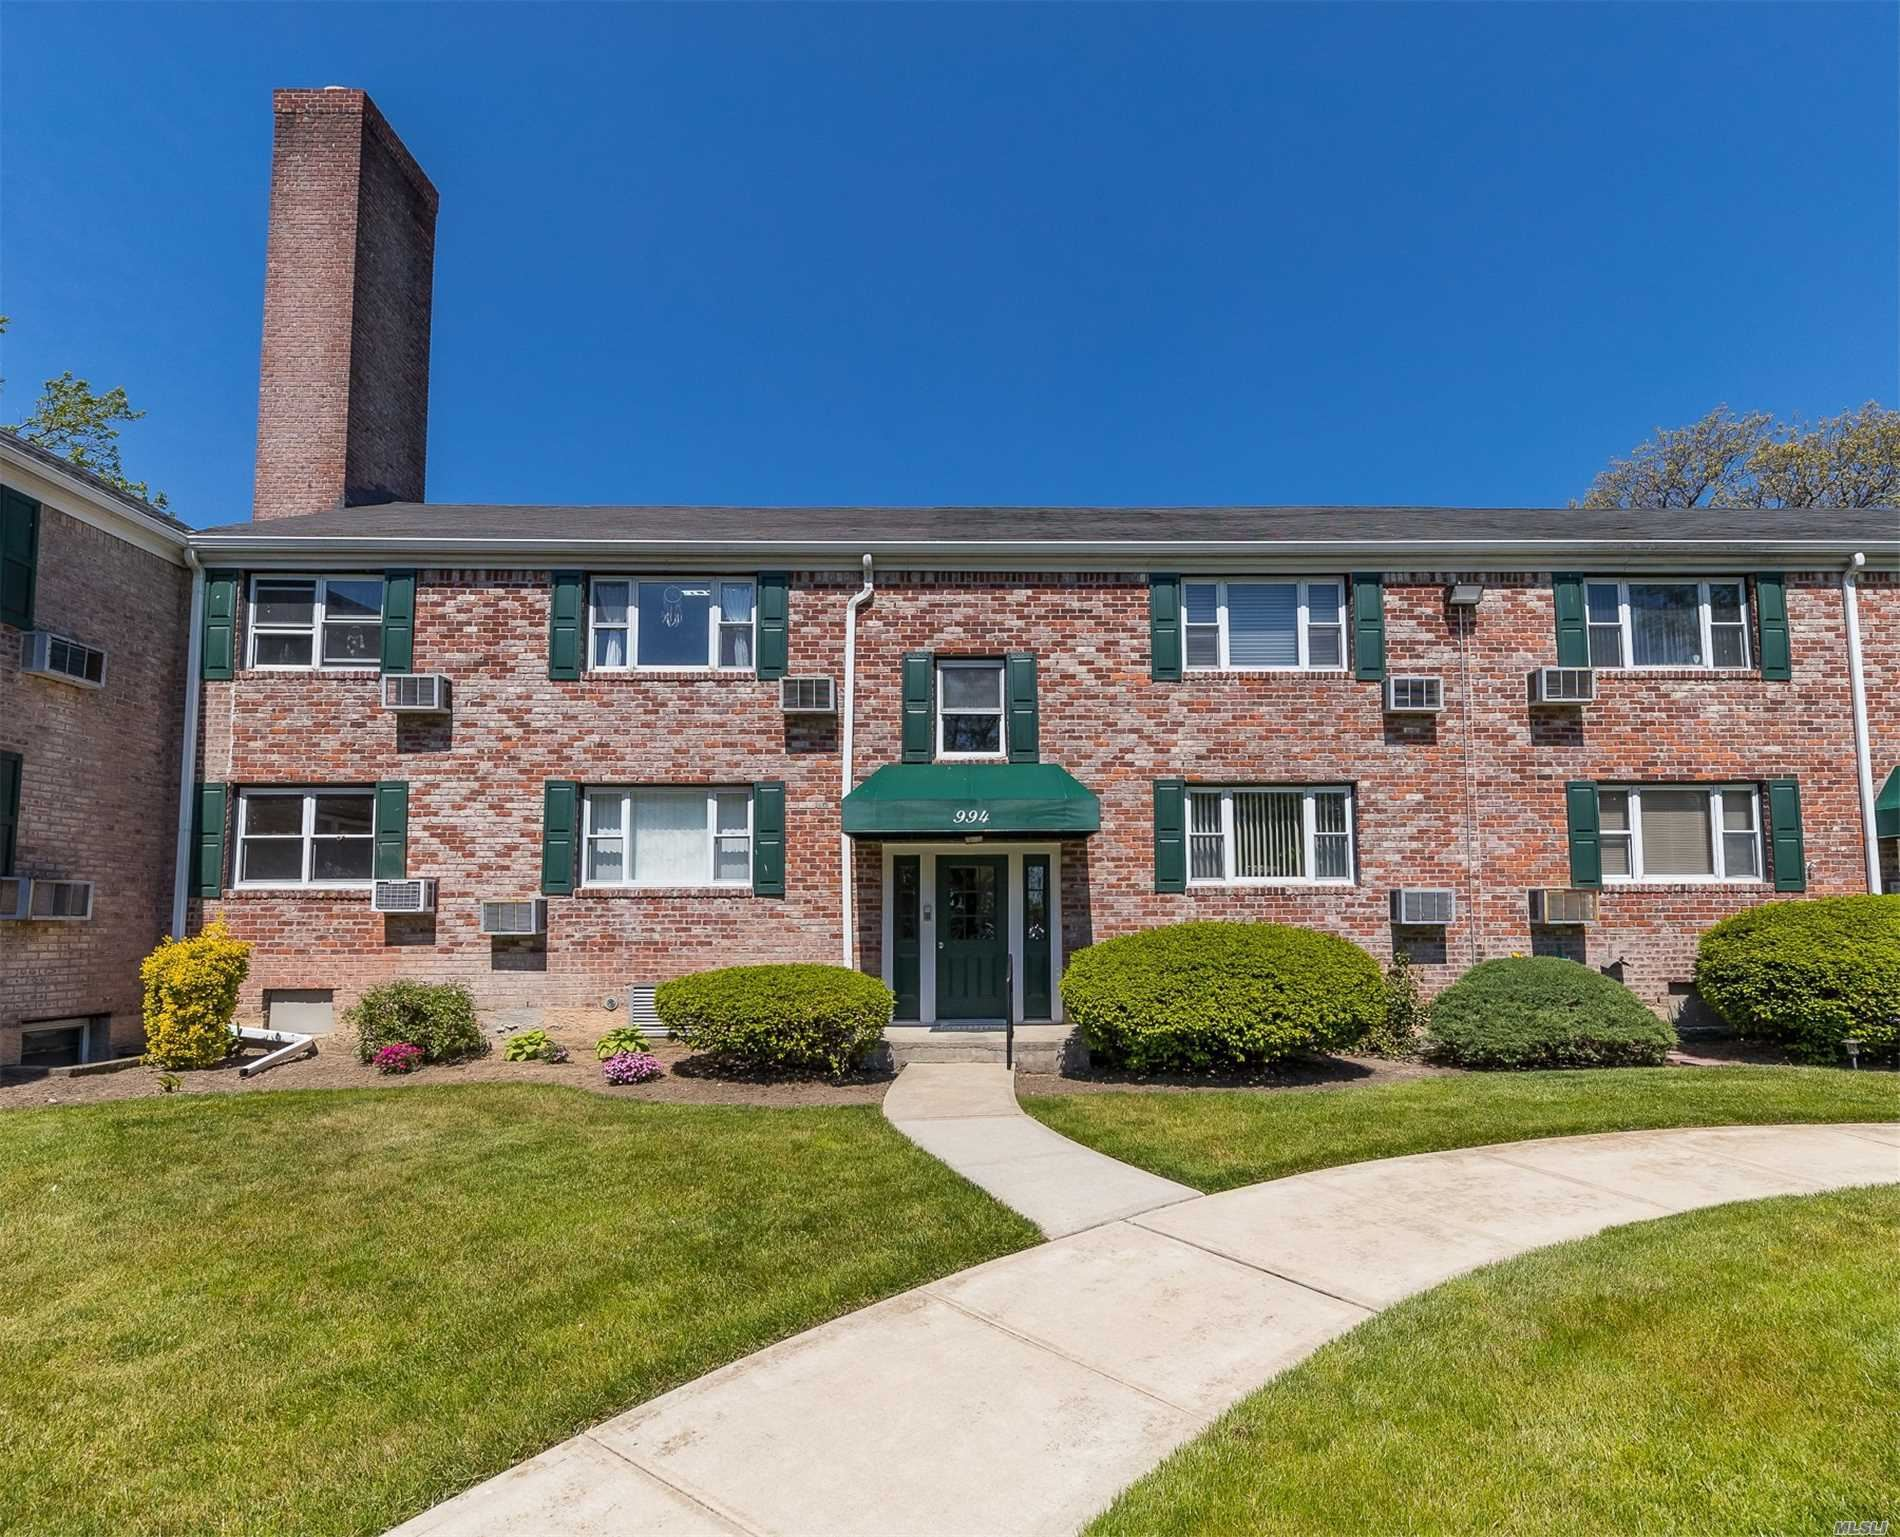 994 Fenwood Drive #3, Valley Stream, NY 11580 - MLS#: 3217365